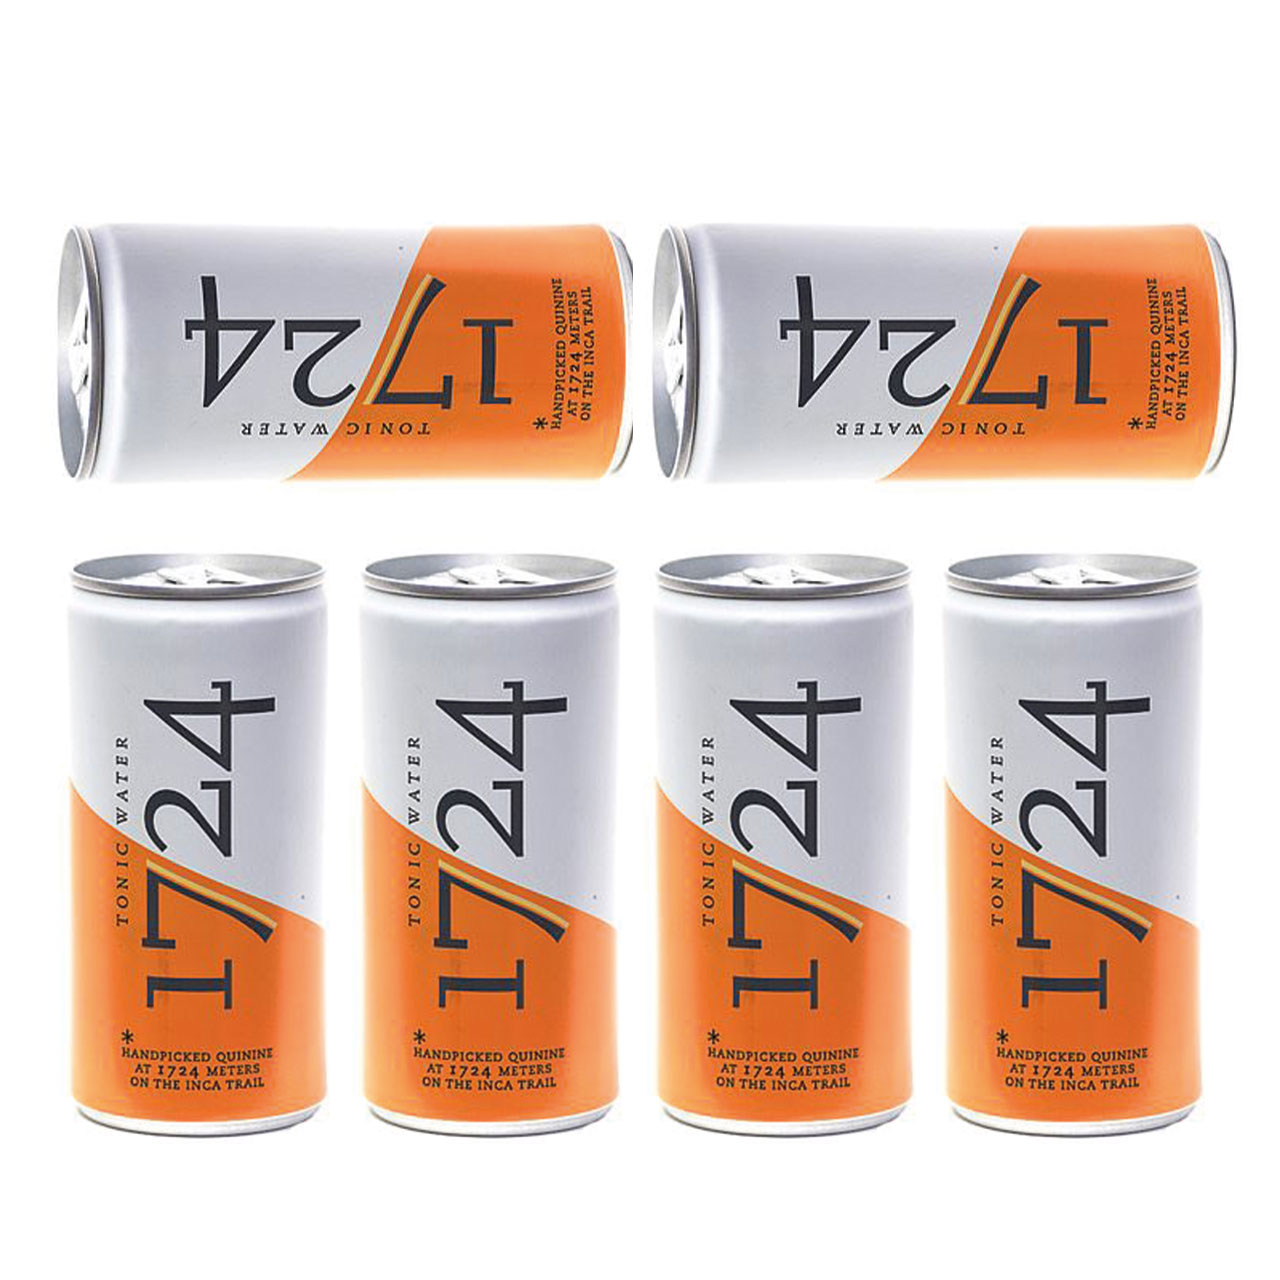 1724 Dry Tonic 6er Set Dosen